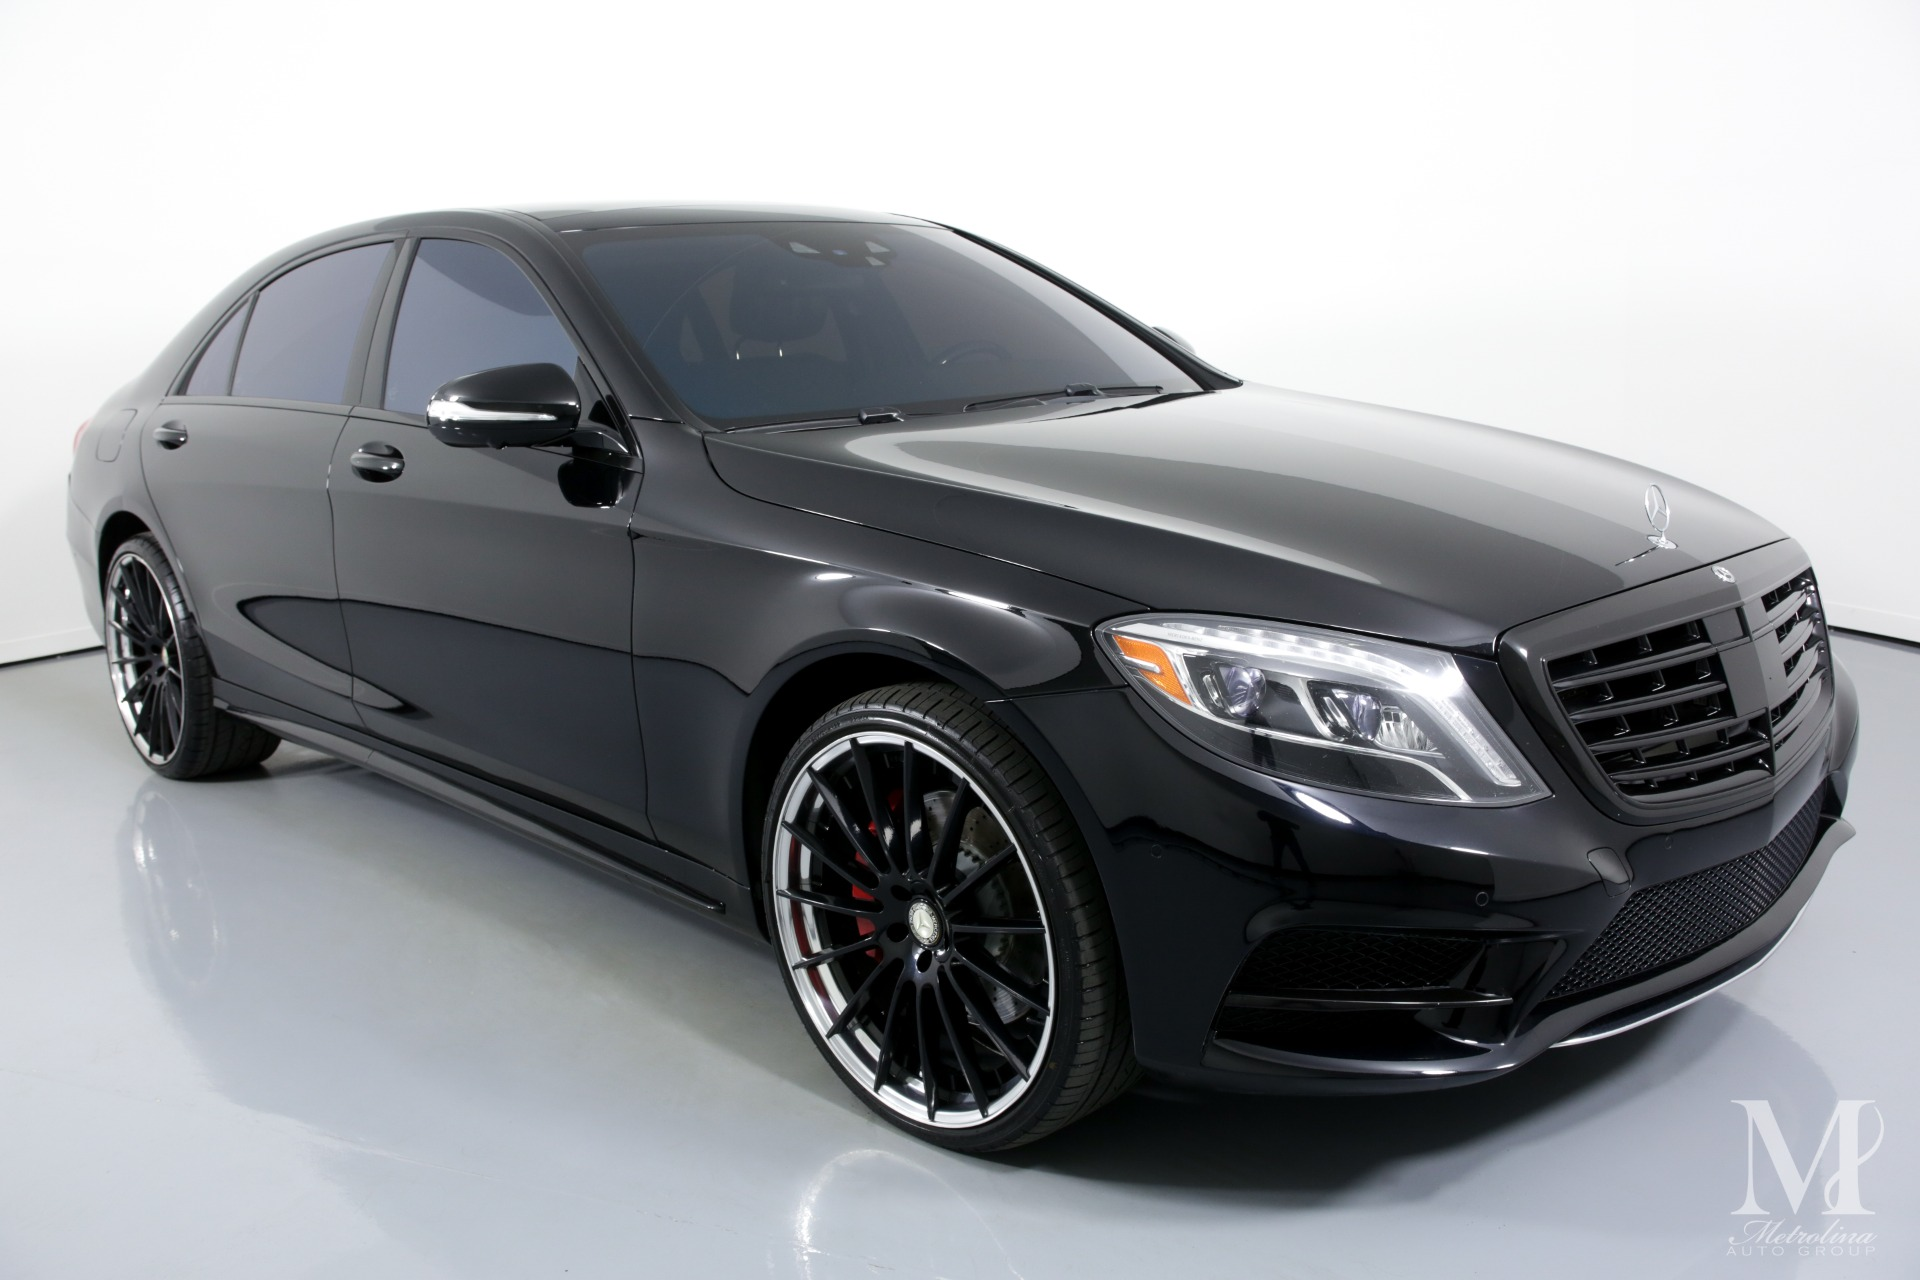 Used 2015 Mercedes-Benz S-Class S 550 for sale $42,996 at Metrolina Auto Group in Charlotte NC 28217 - 2